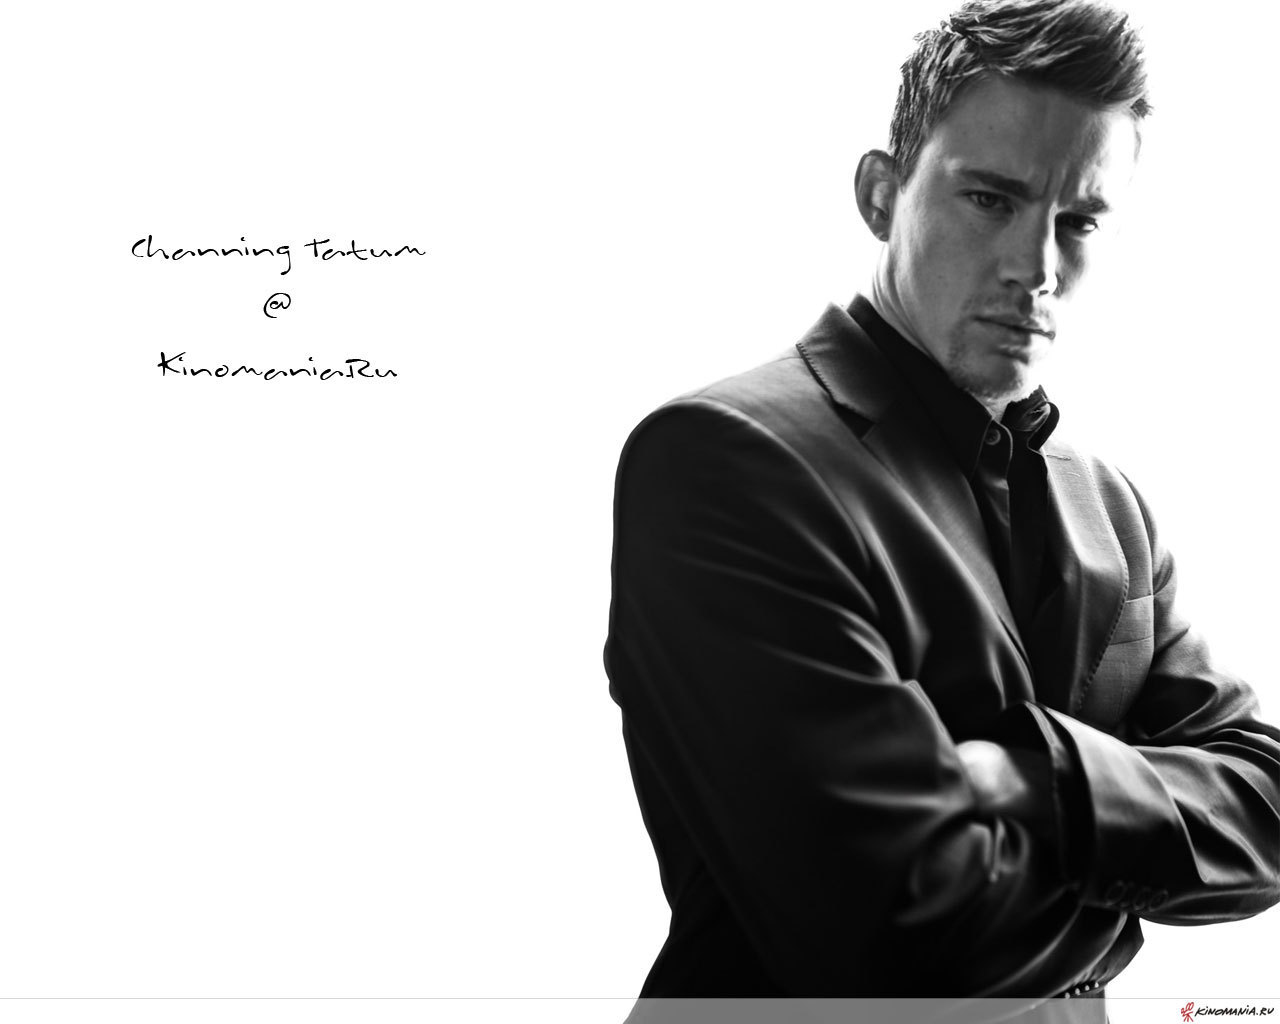 channing tatum images channing tatum wallpaper photos